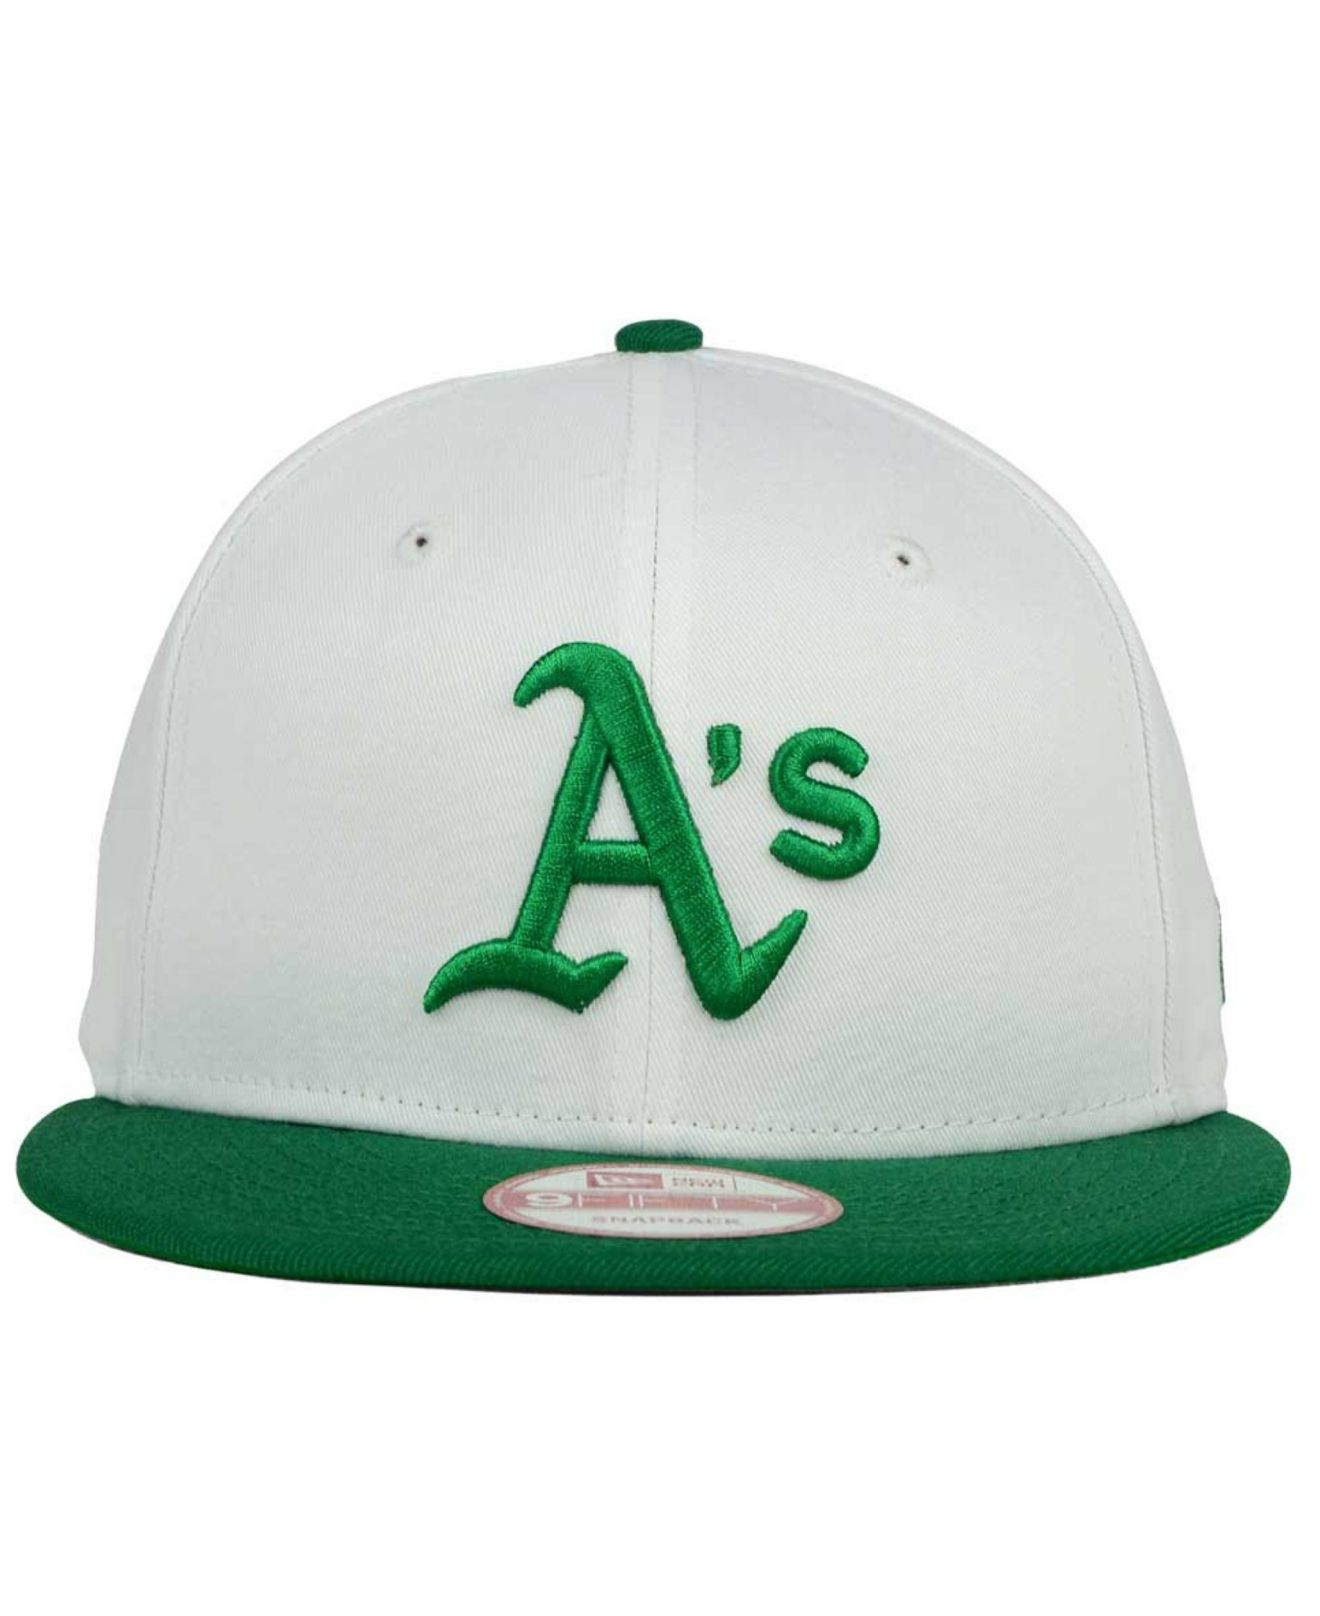 fa49a08deea89a KTZ Oakland Athletics 2 Tone Link Cooperstown 9fifty Snapback Cap in ...